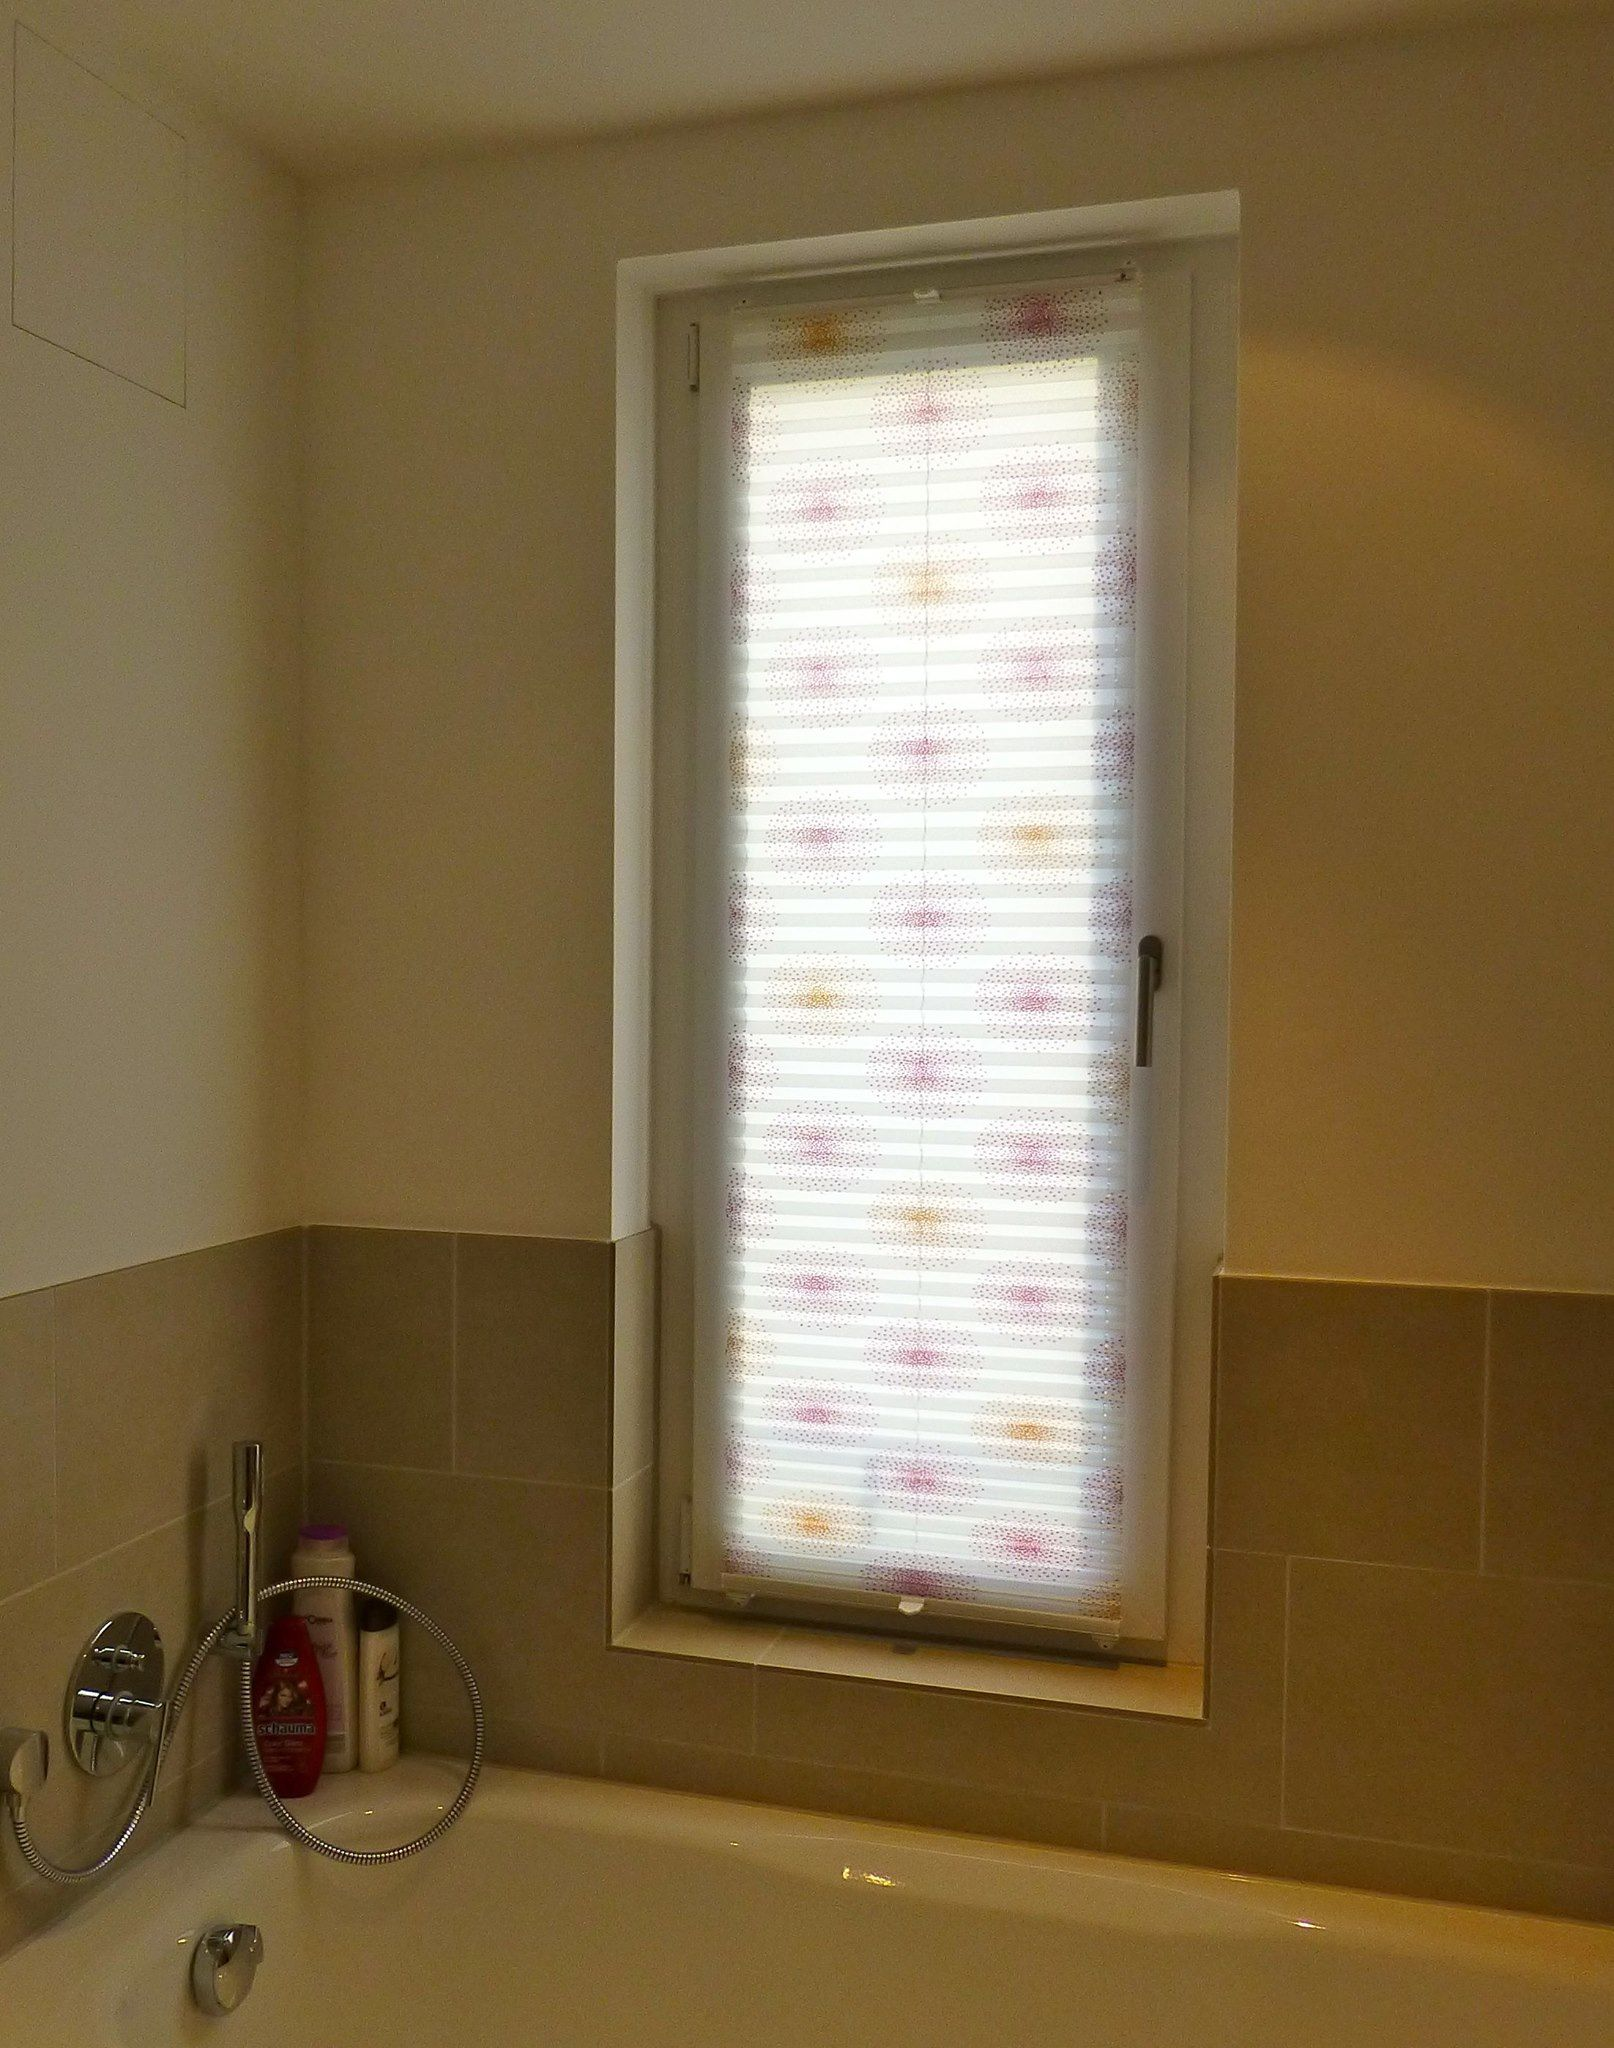 Tolle Fensterdeko Im Bad Badezimmer Plissee Mit Muster Bathroom Pleated Blind With Pattern Rosa Pink Orange Fenster P Badezimmer Muster Plissee Muster